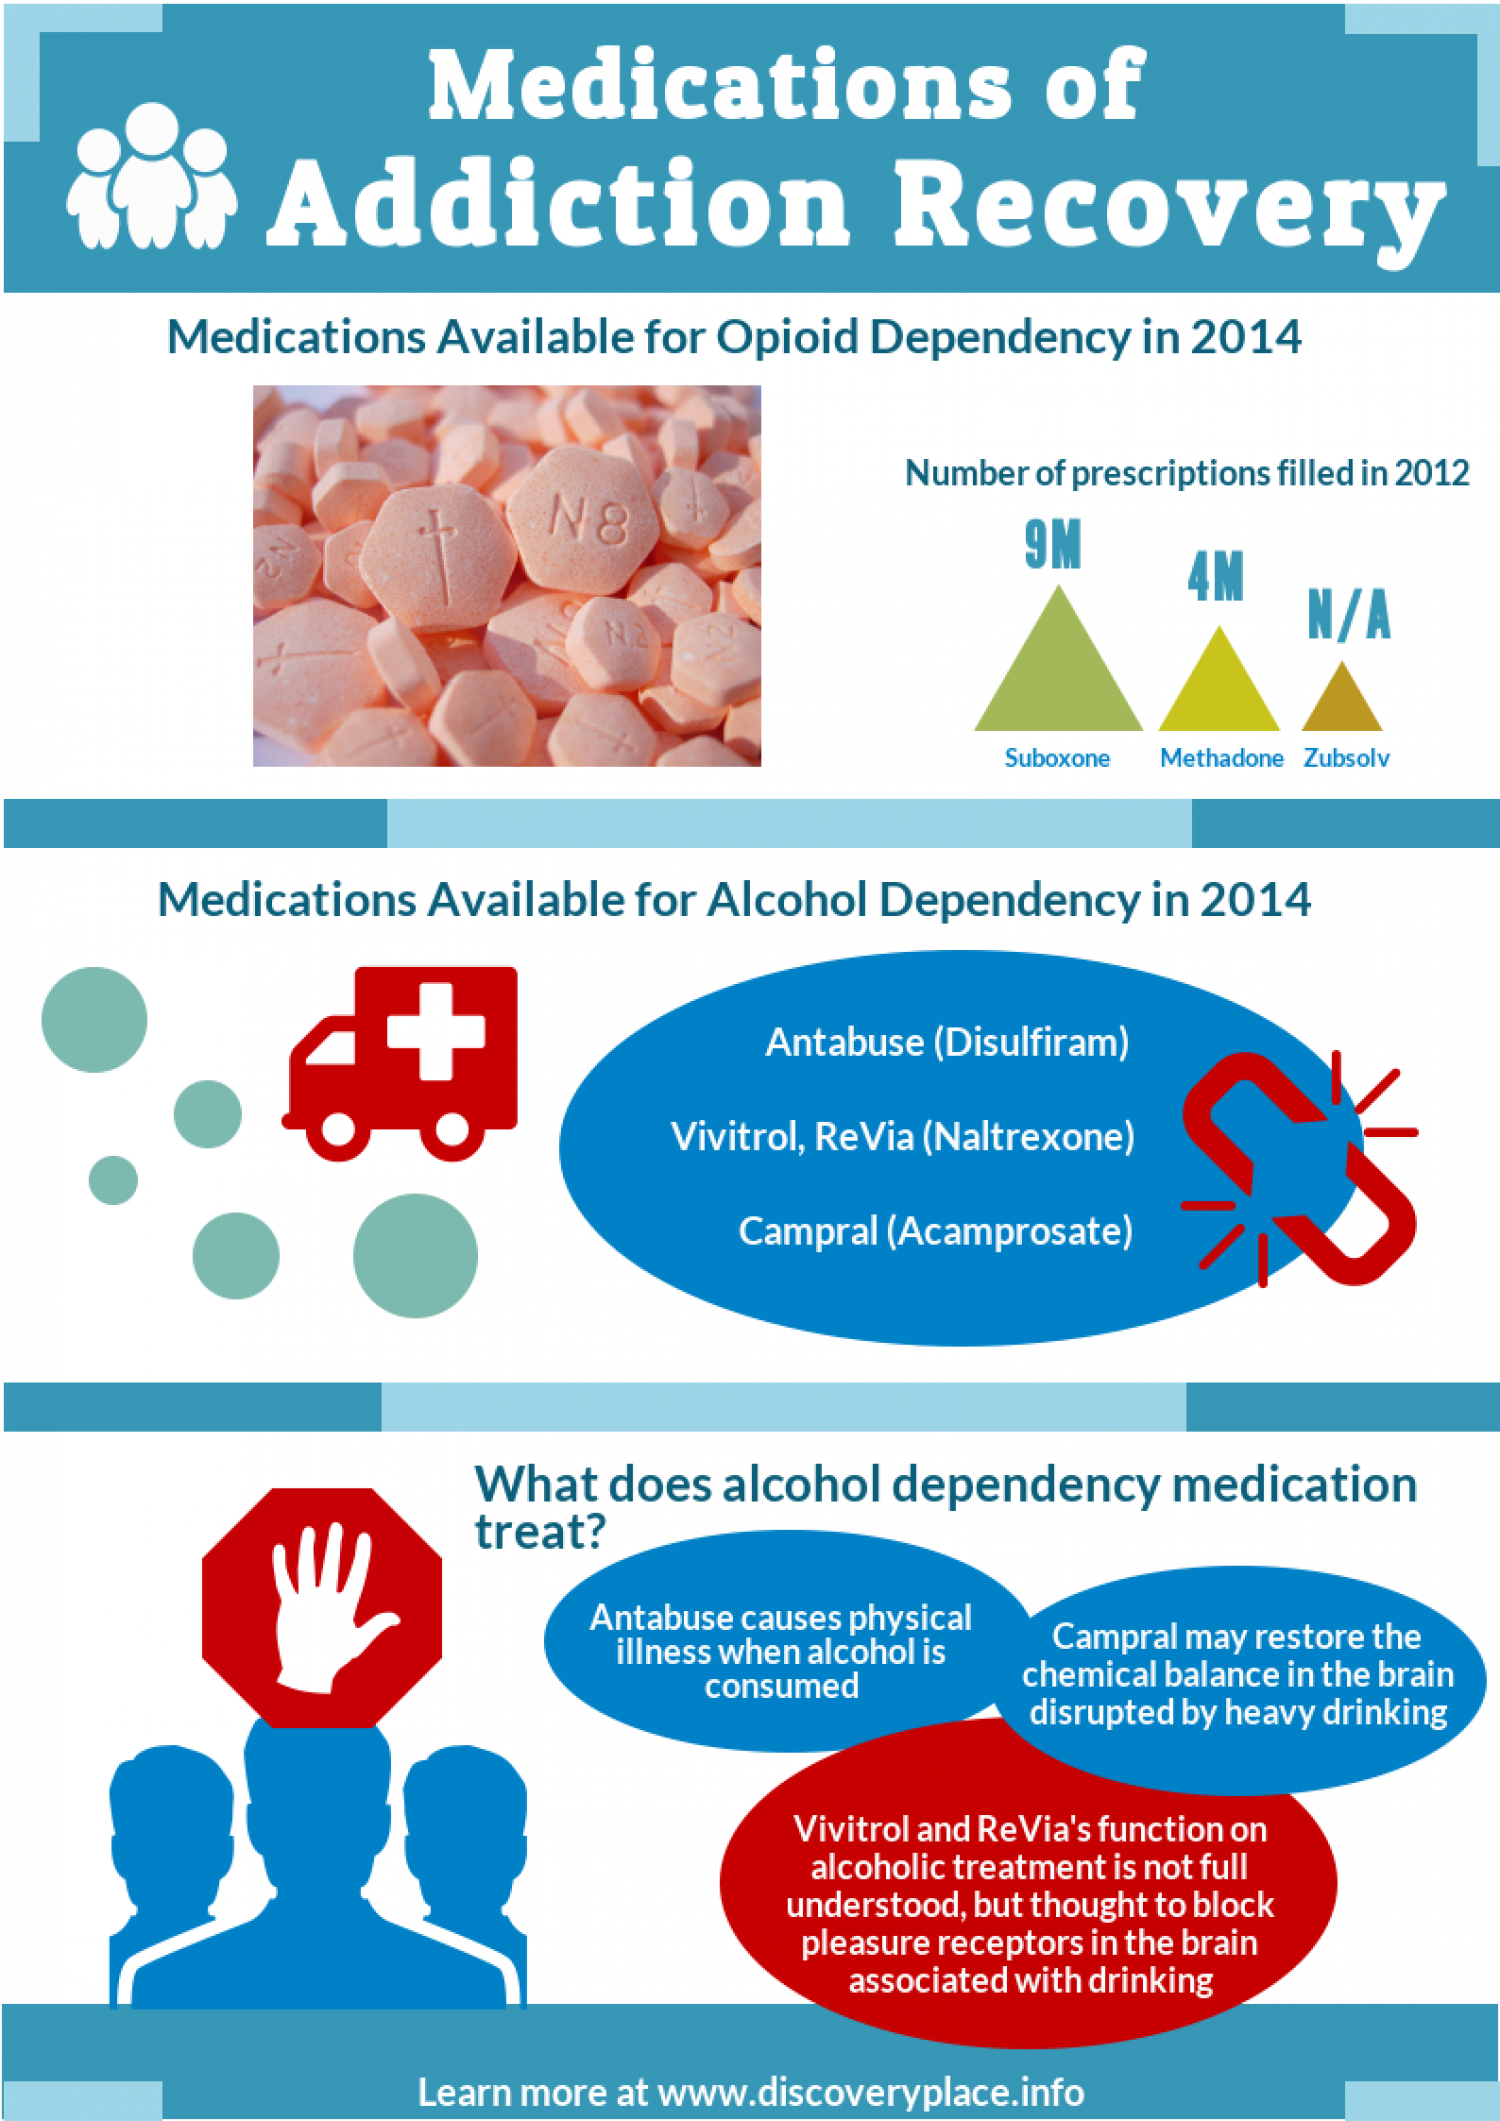 Medications of Addiction Recovery Infographic